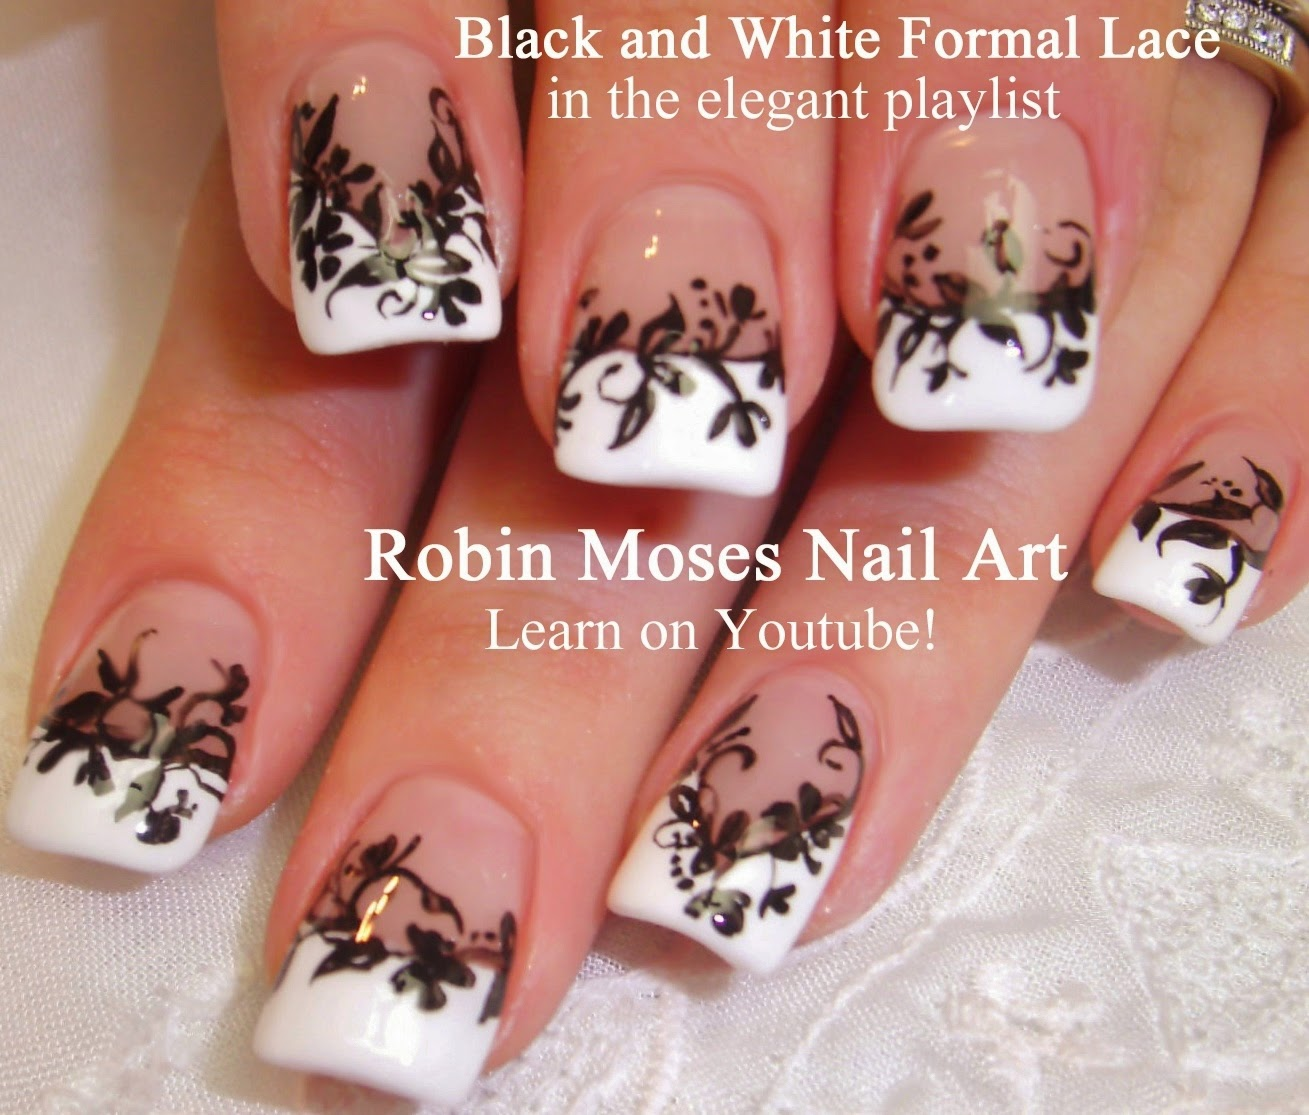 Robin moses nail art lace nails nail art lace nail art lace nails nail art lace nail art black lace nails black lace design black and white nails white lace nails pink lace prinsesfo Image collections